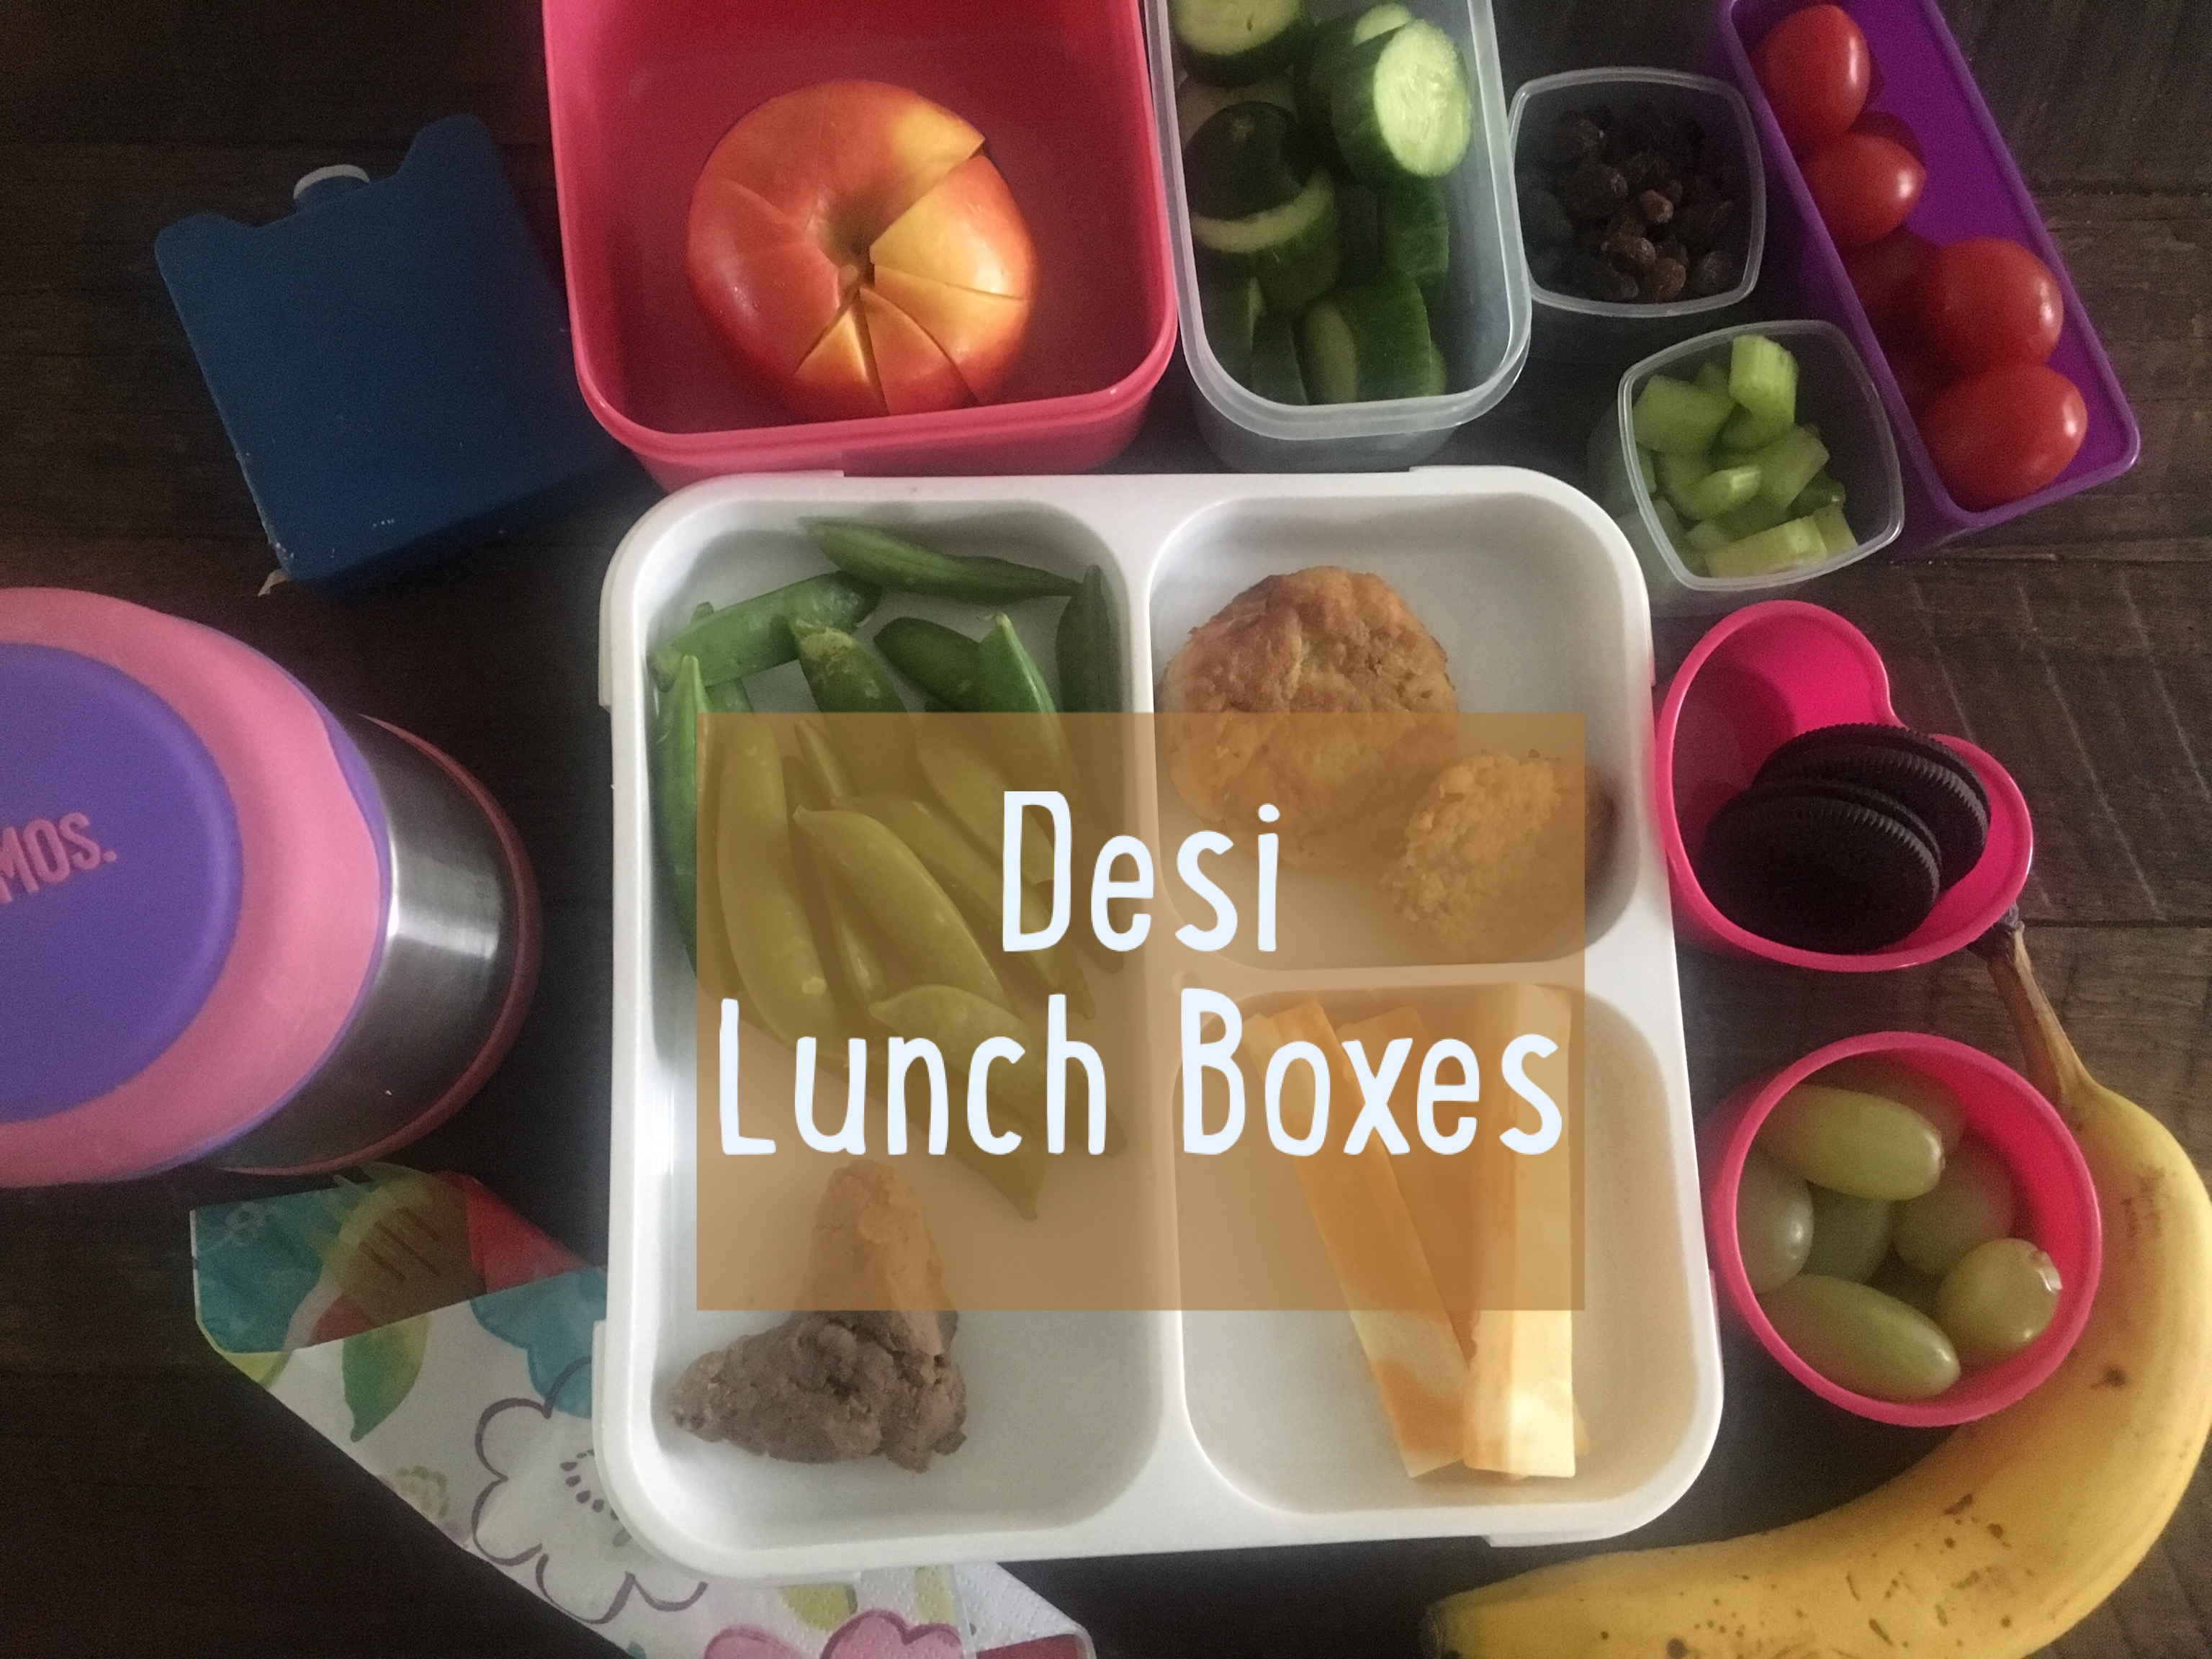 Desi Lunch Box Ideas For 30 Days Keep It Nourishing Fun And